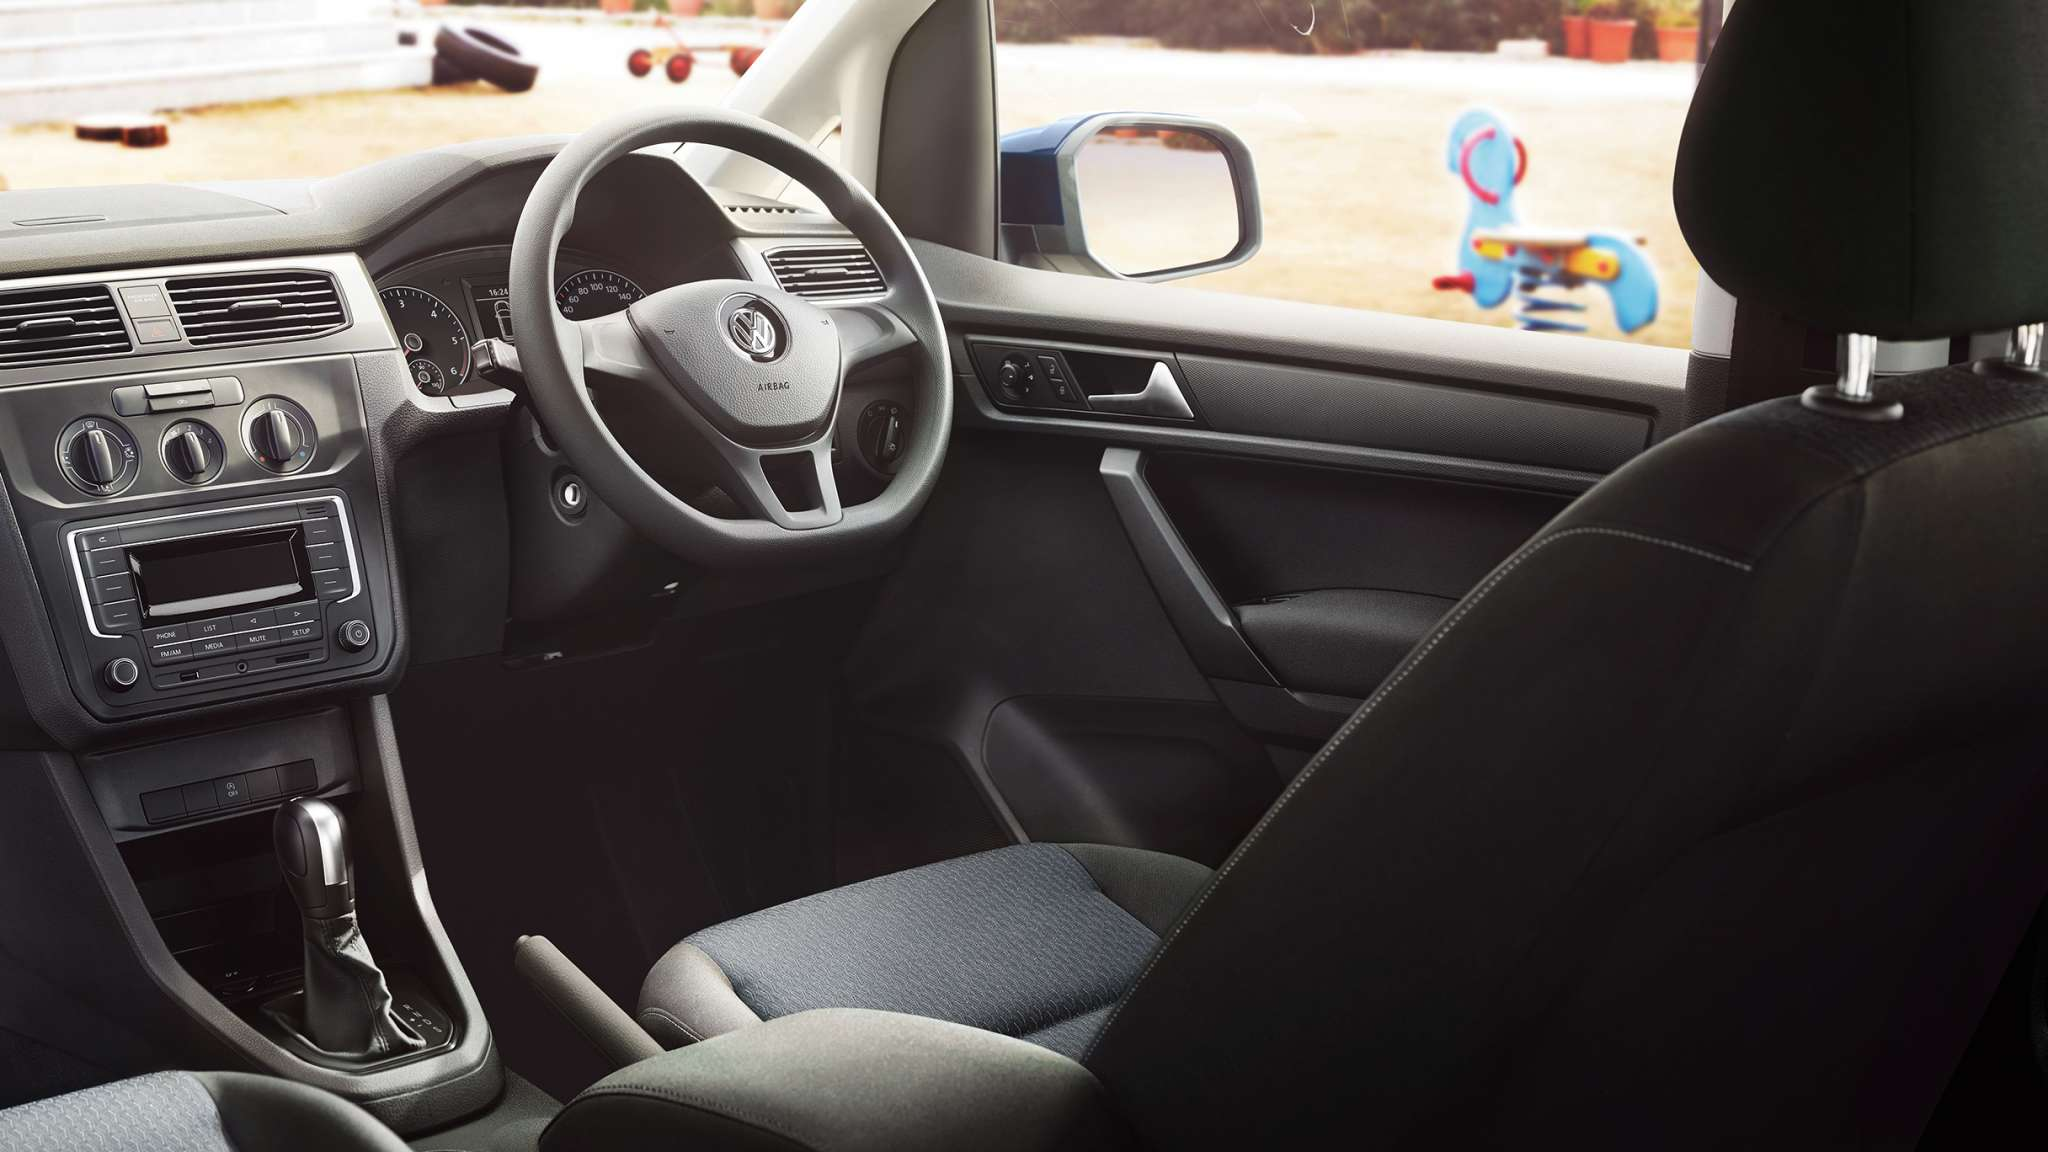 VW Caddy Trendline and Alltrack cockpit of the highest quality